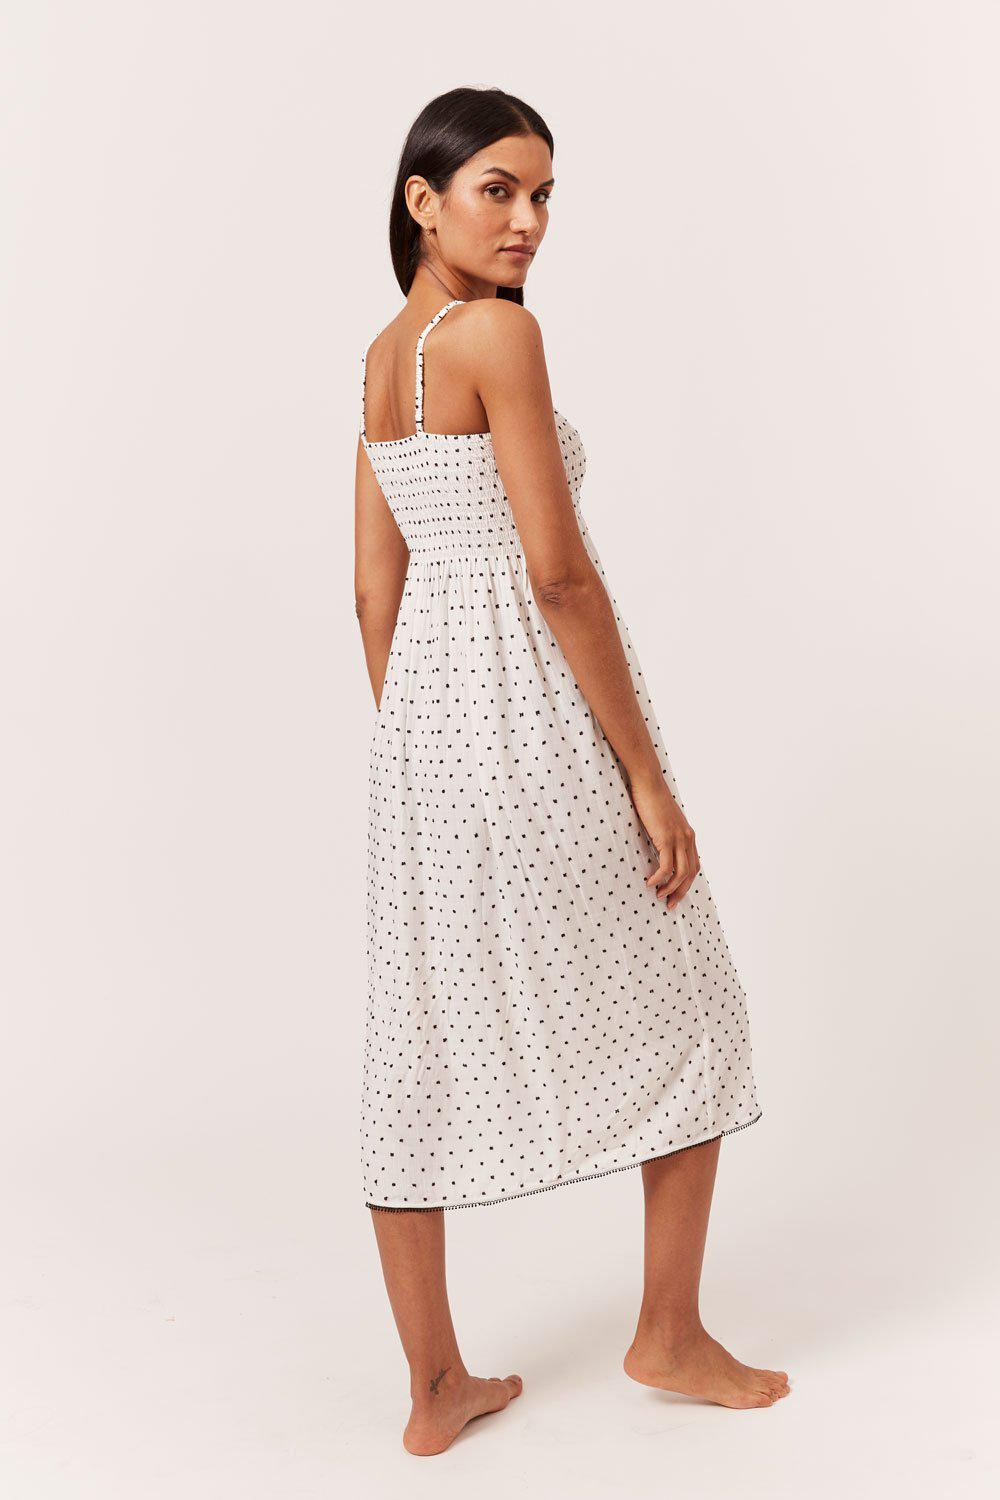 The Willow Dress 2